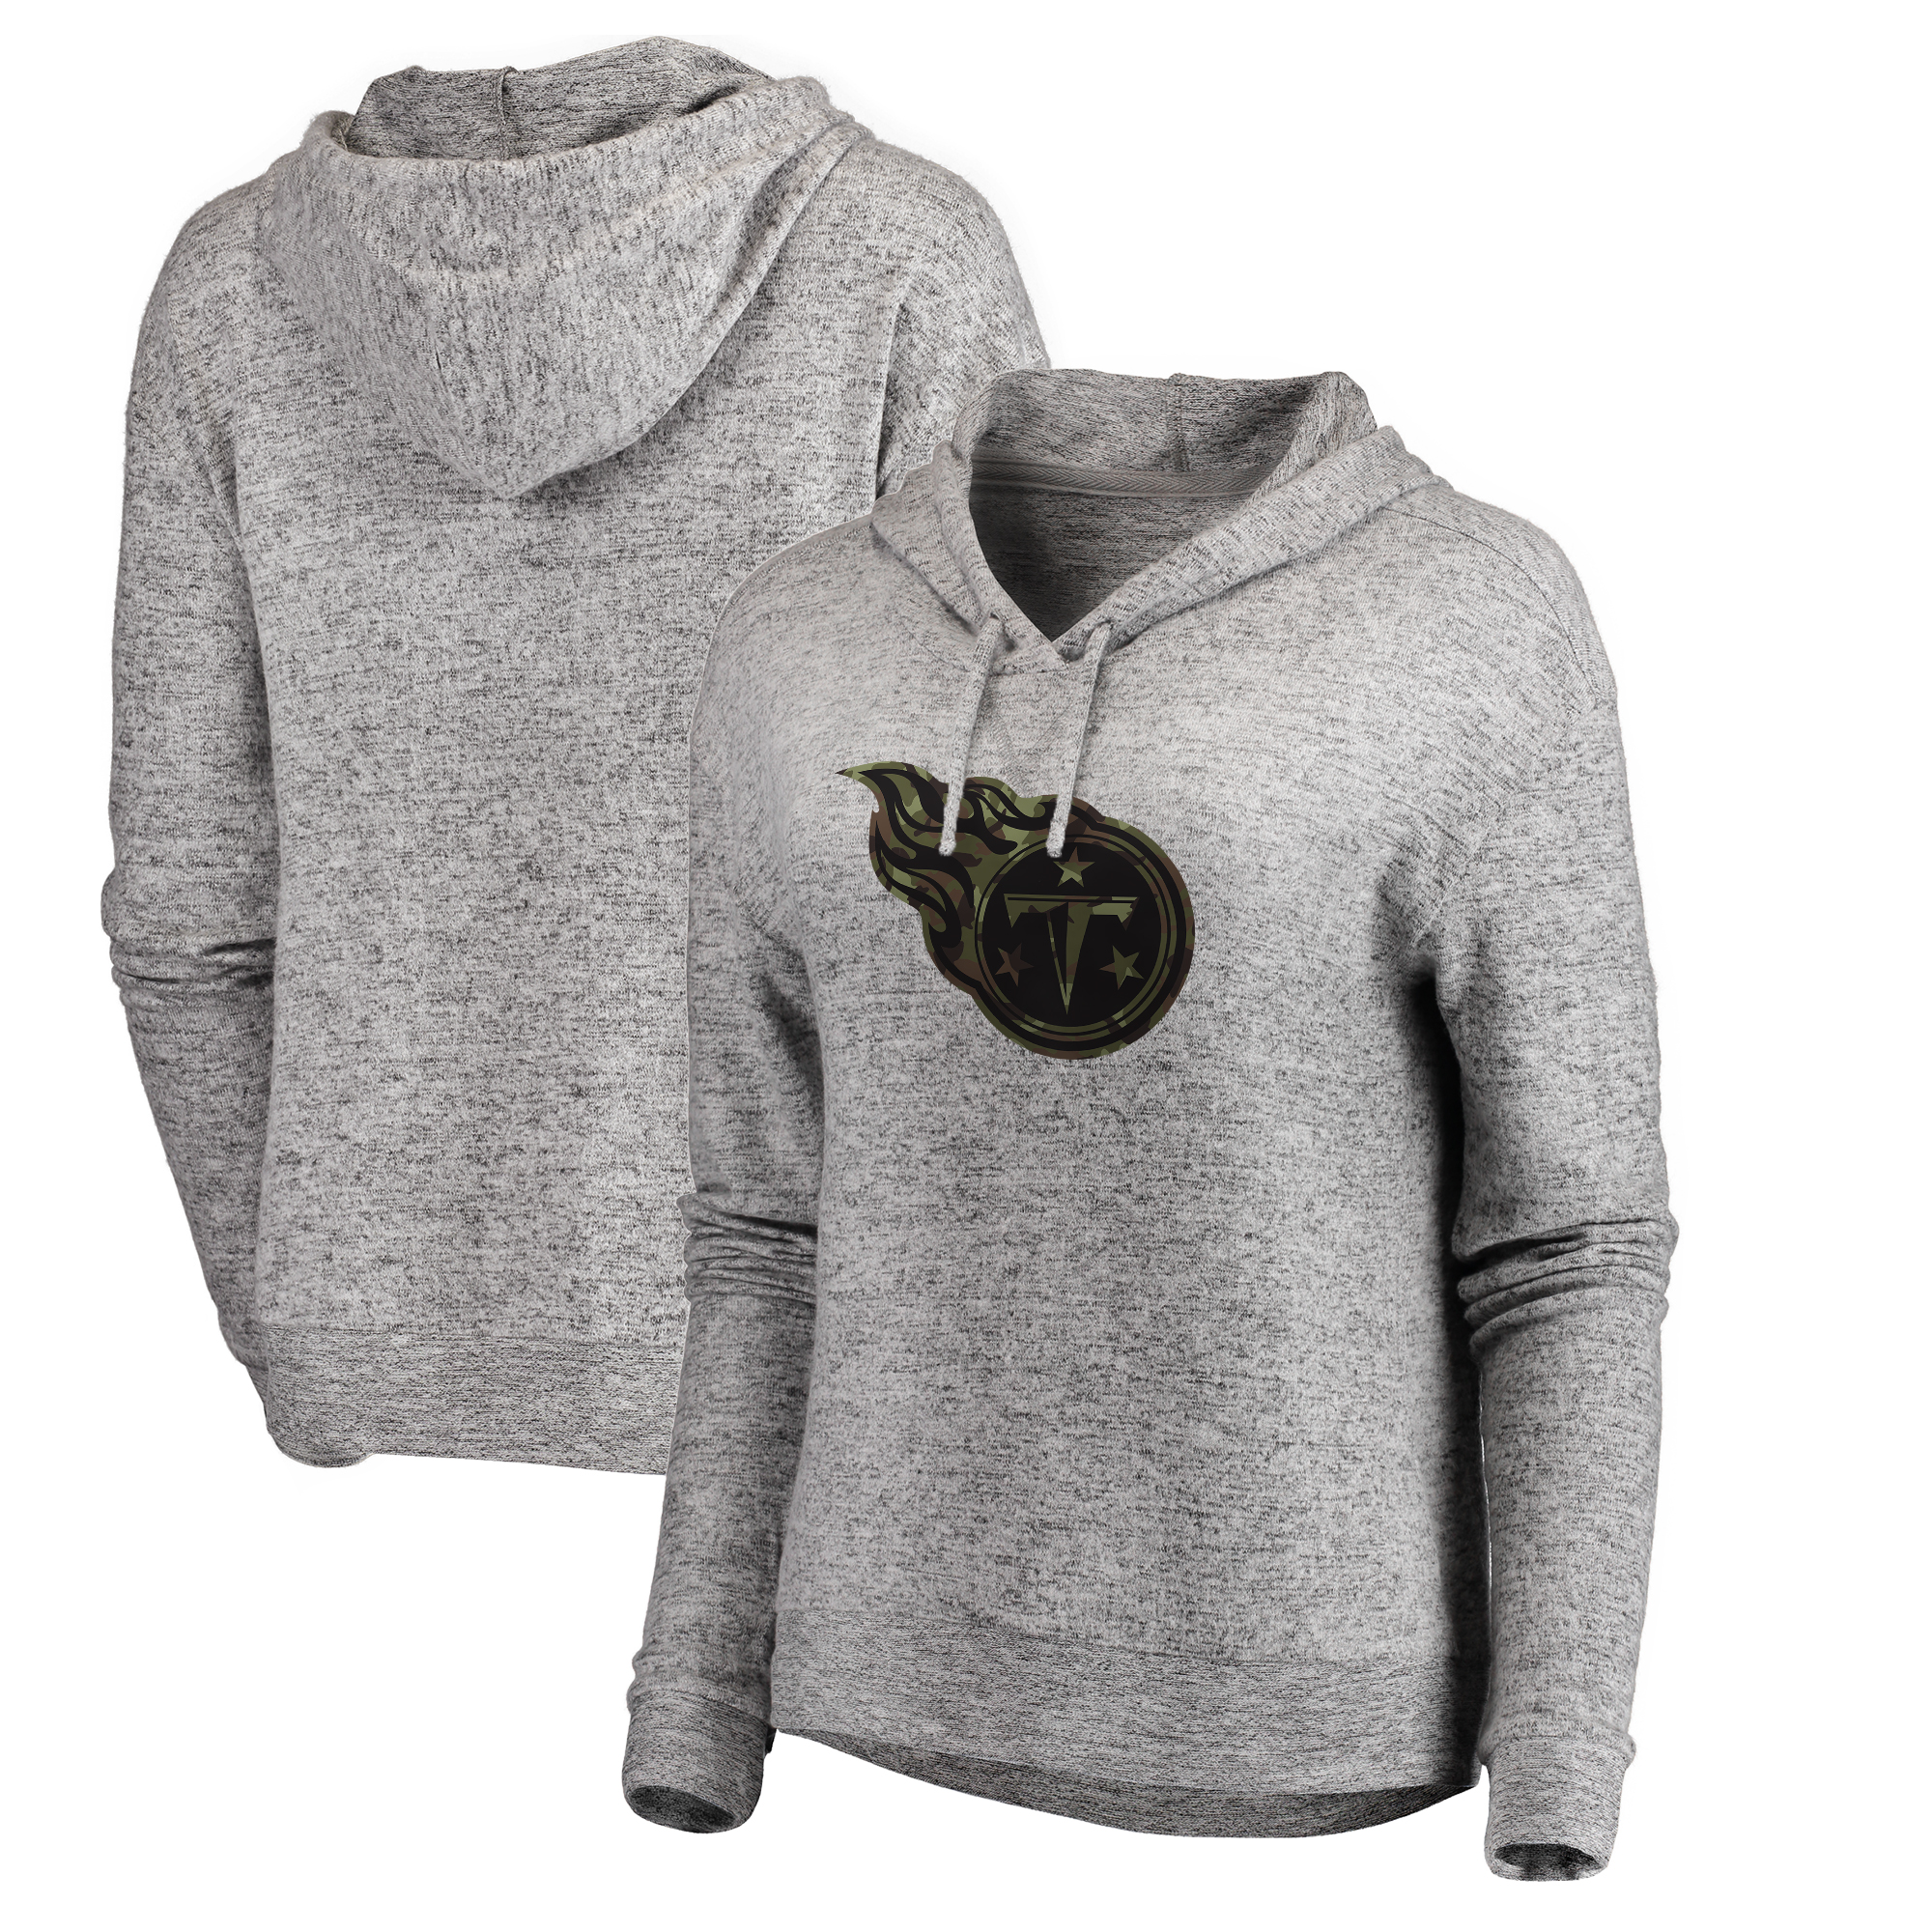 Tennessee Titans NFL Pro Line by Fanatics Branded Women's Cozy Collection Prestige Pullover Hoodie - Heathered Gray